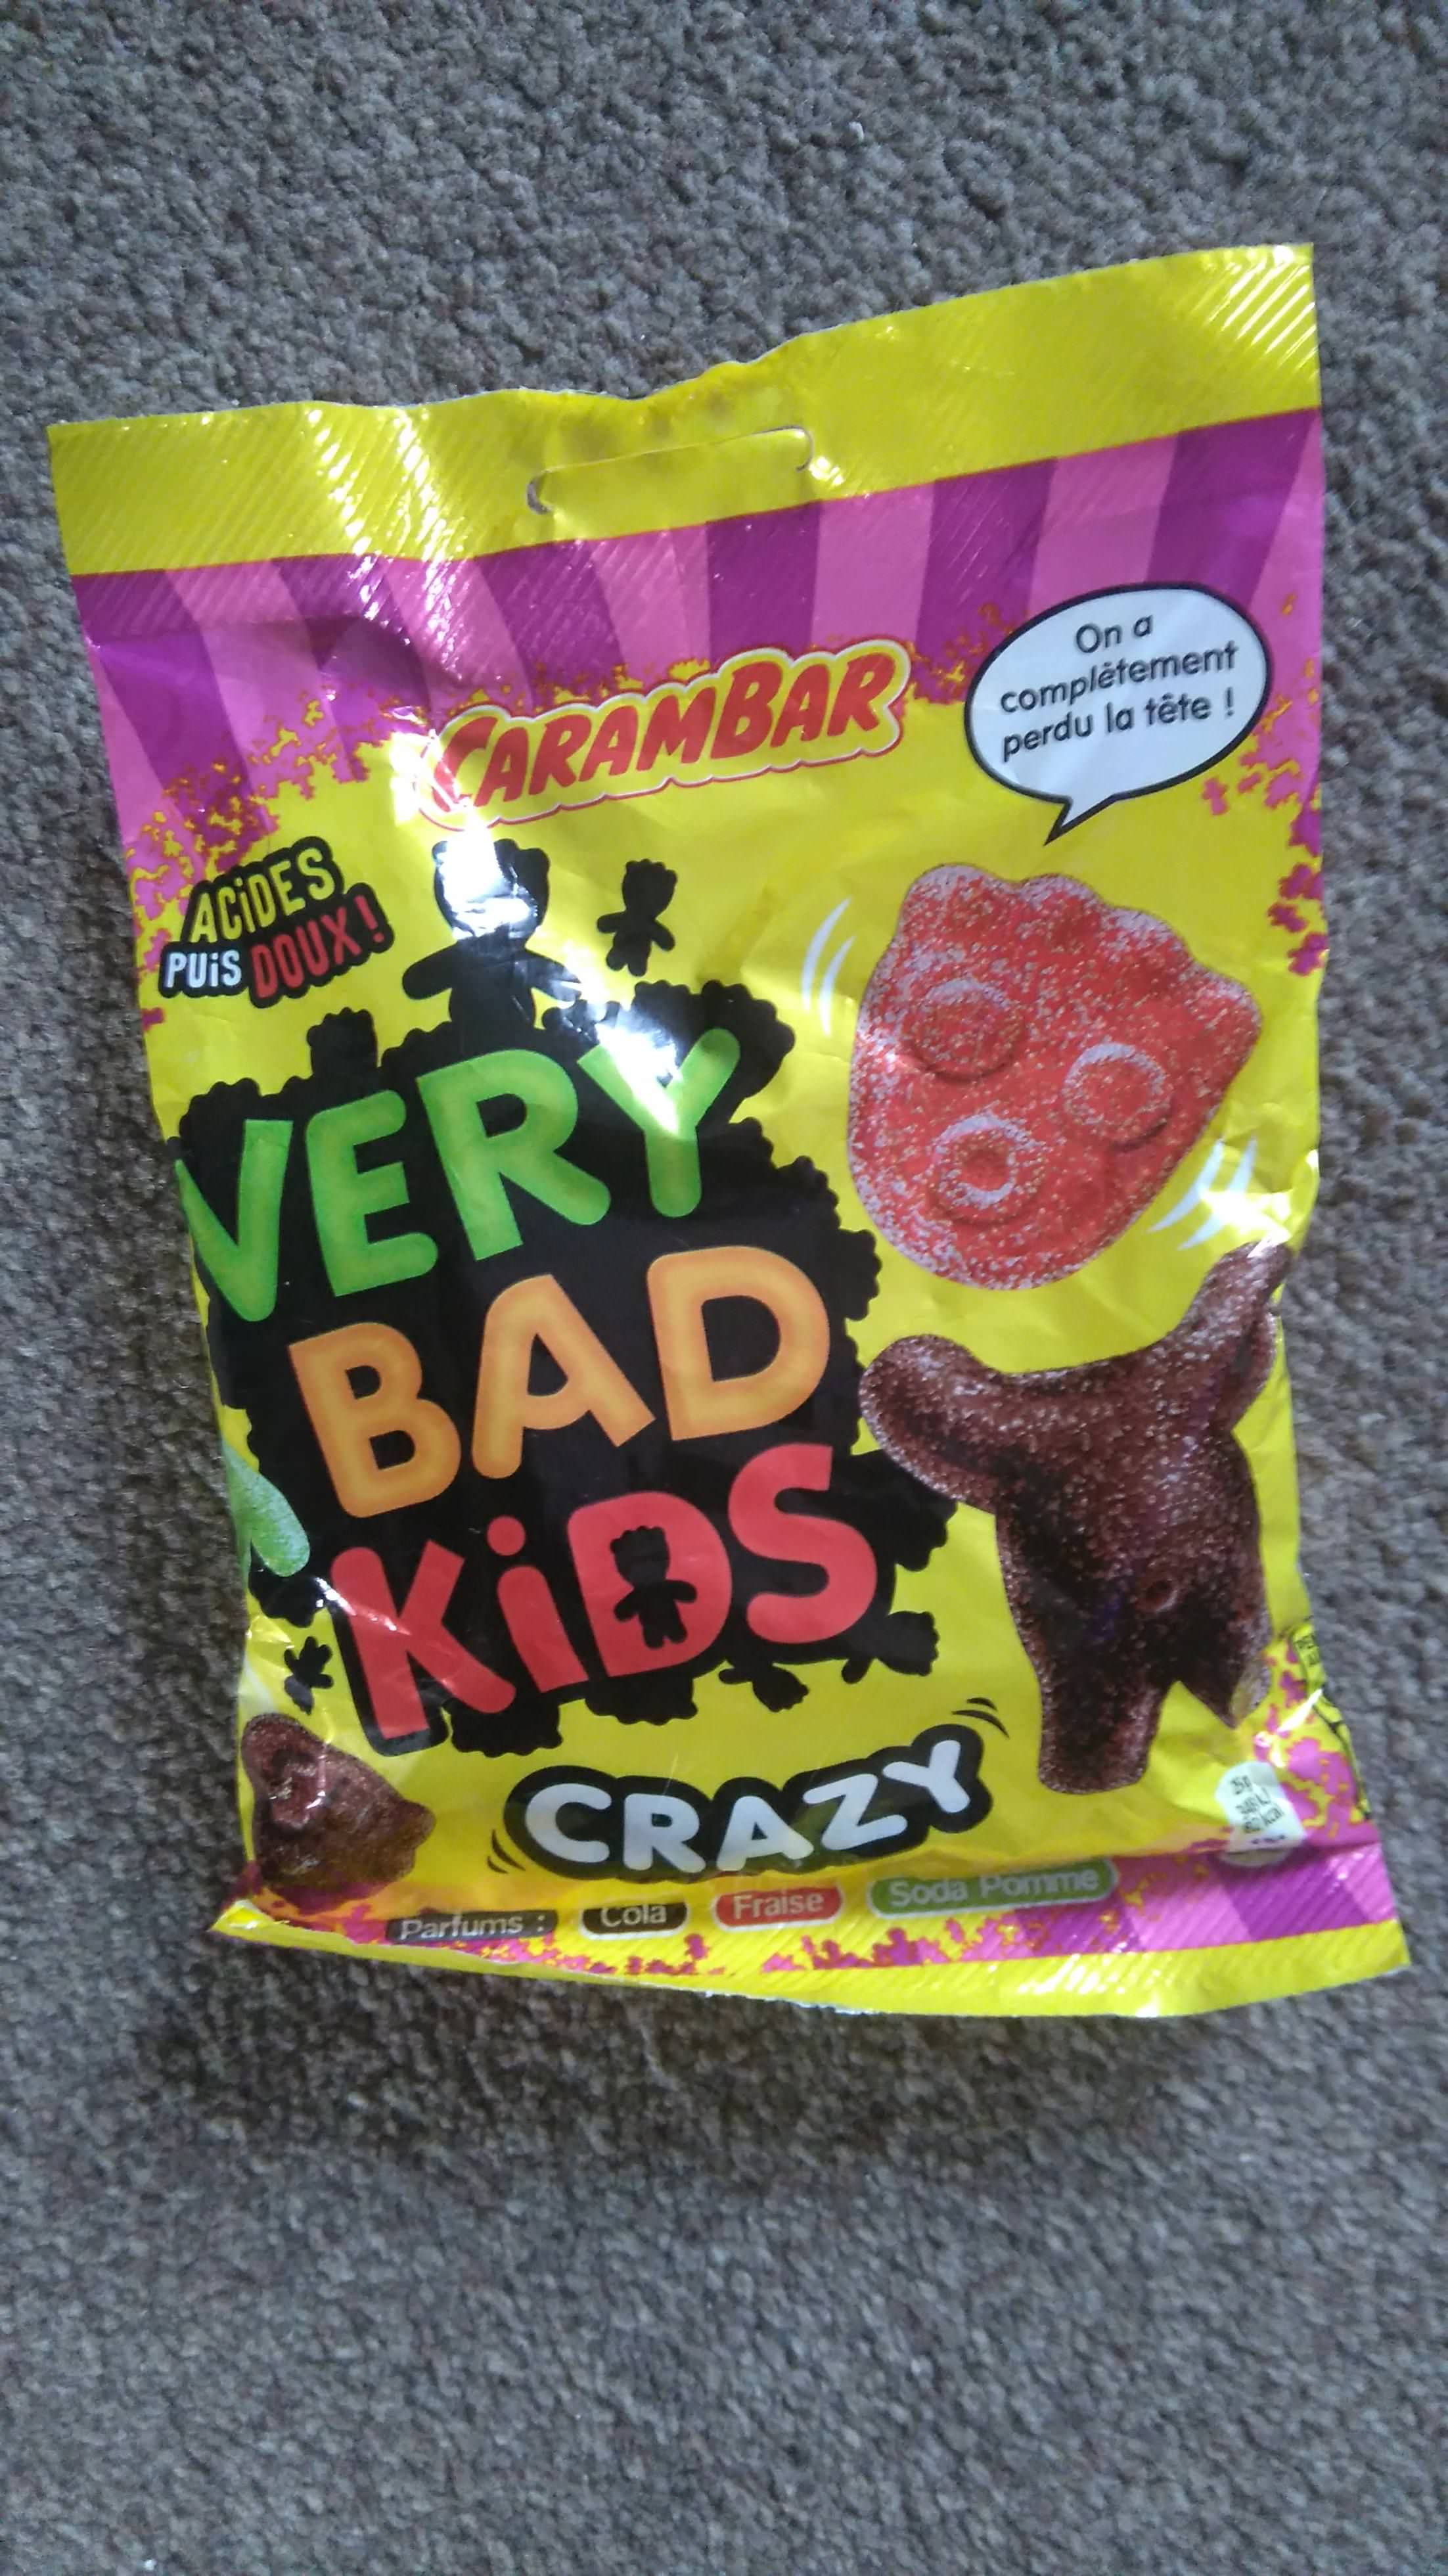 Very Bad Kids Crazy French Version Sour Patch Kids Sour Patch Frozen Kids